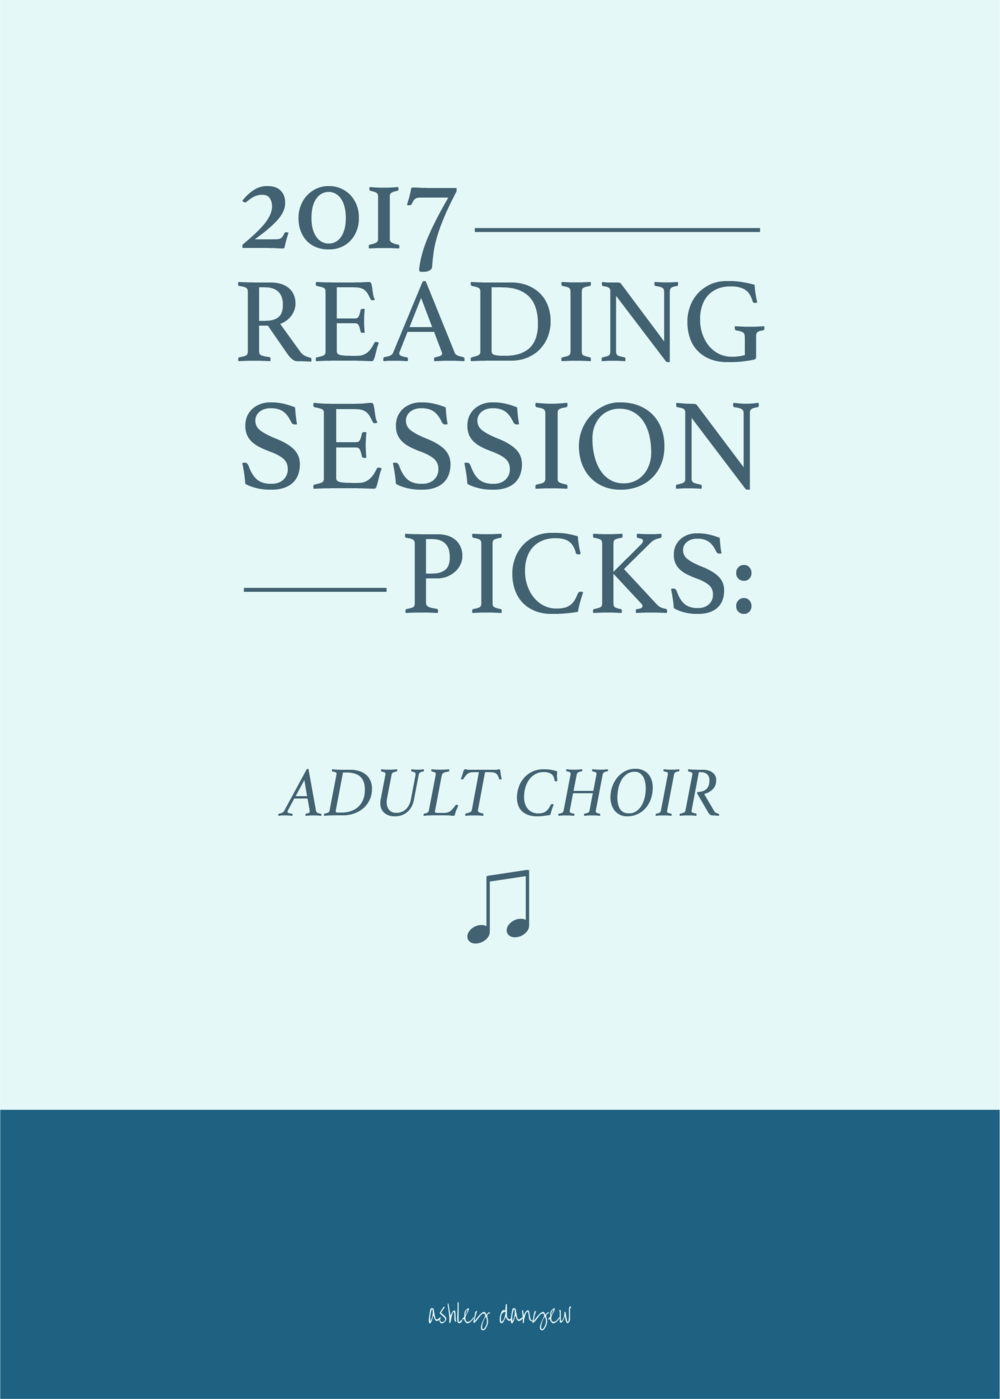 Copy of 2017 Reading Session Picks: Adult Choir